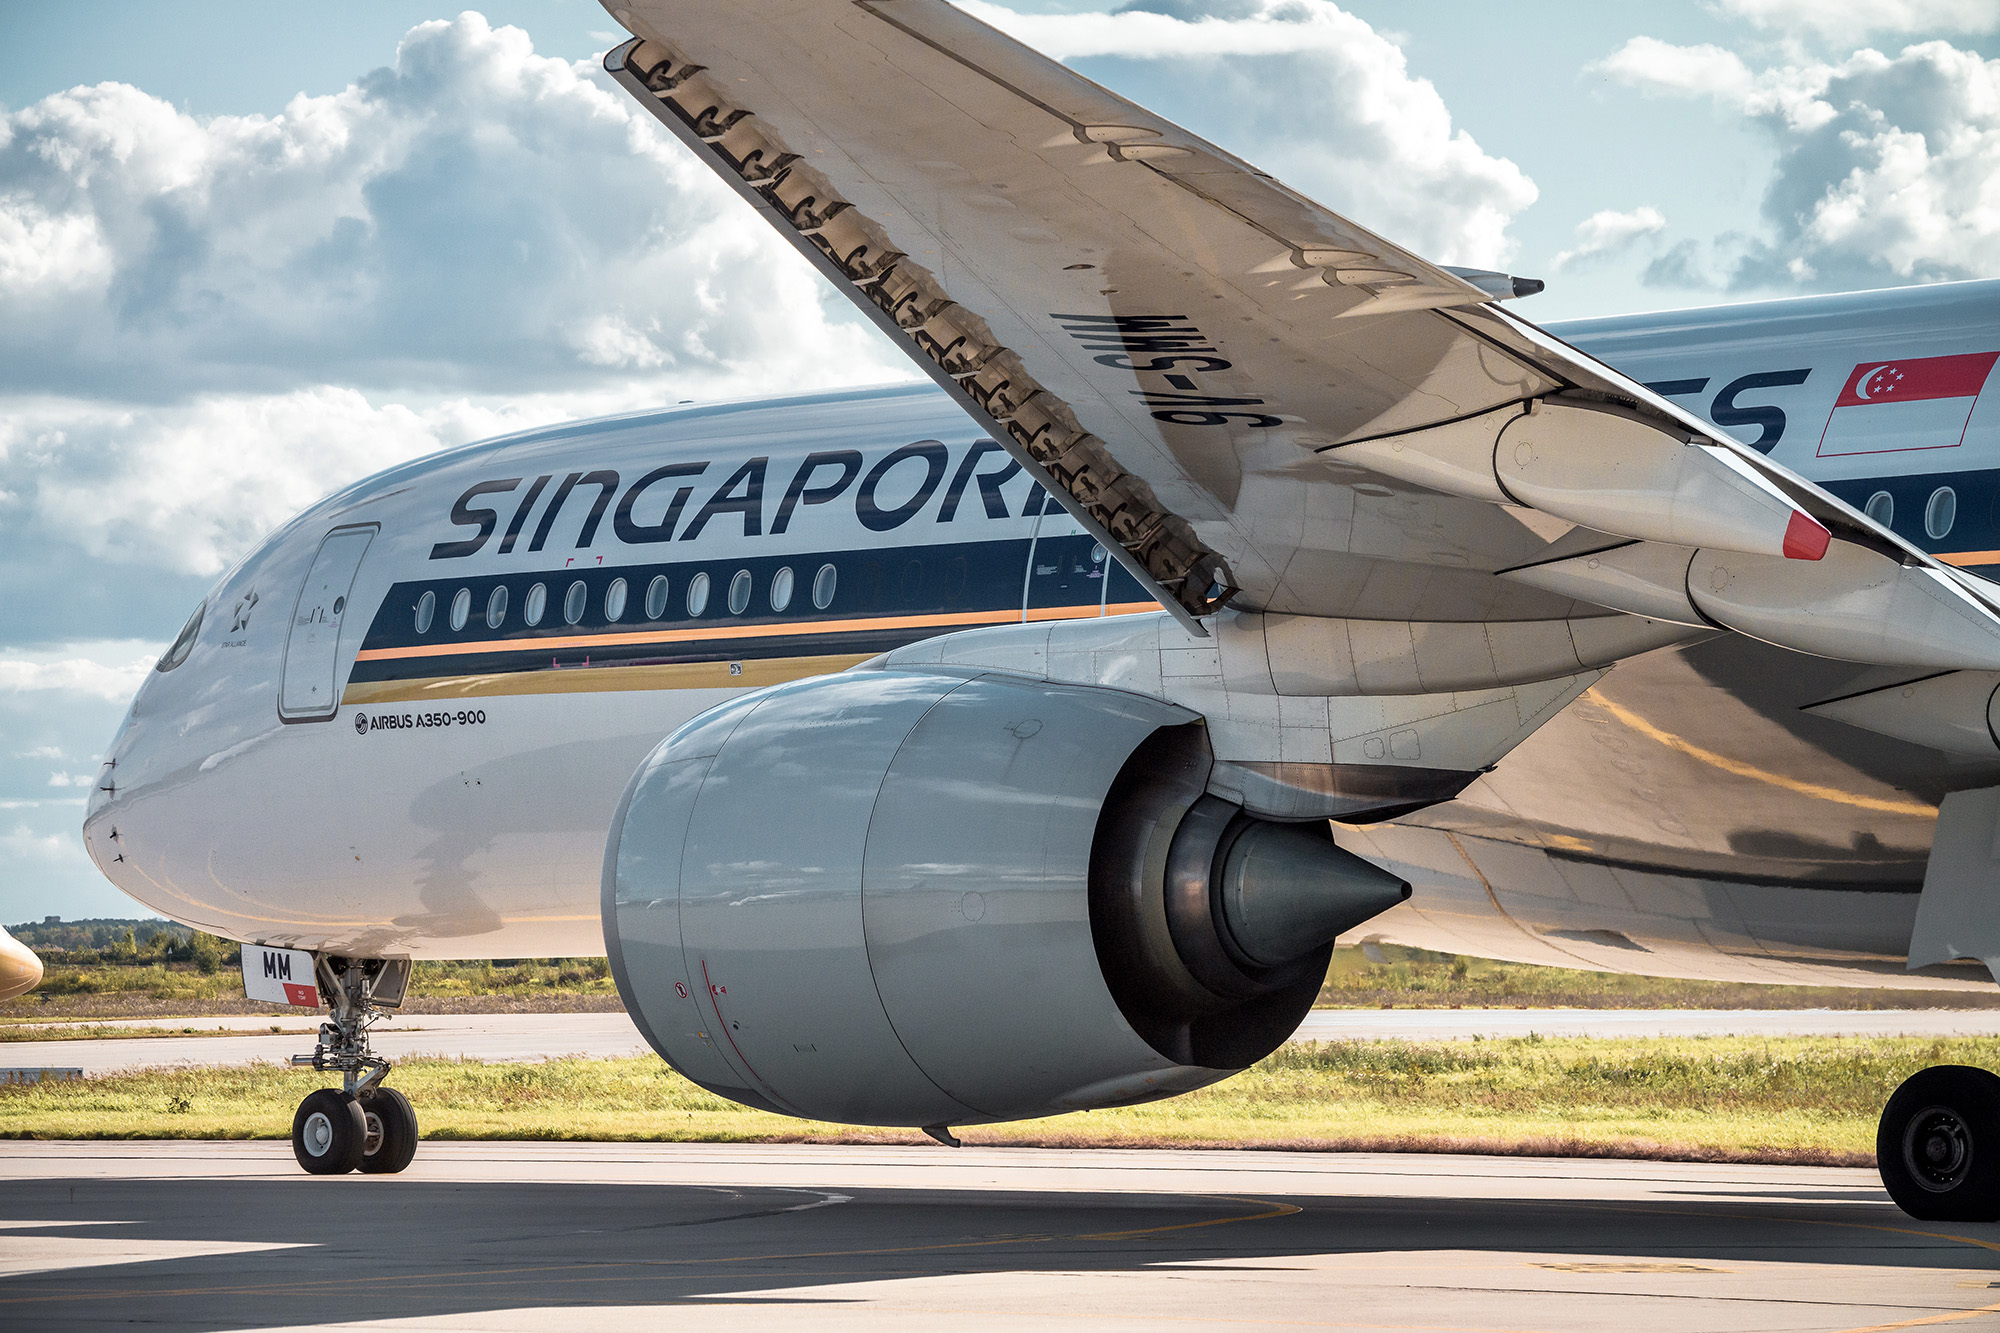 14 SIA passenger aircraft reconfigured to carry cargo in the cabin